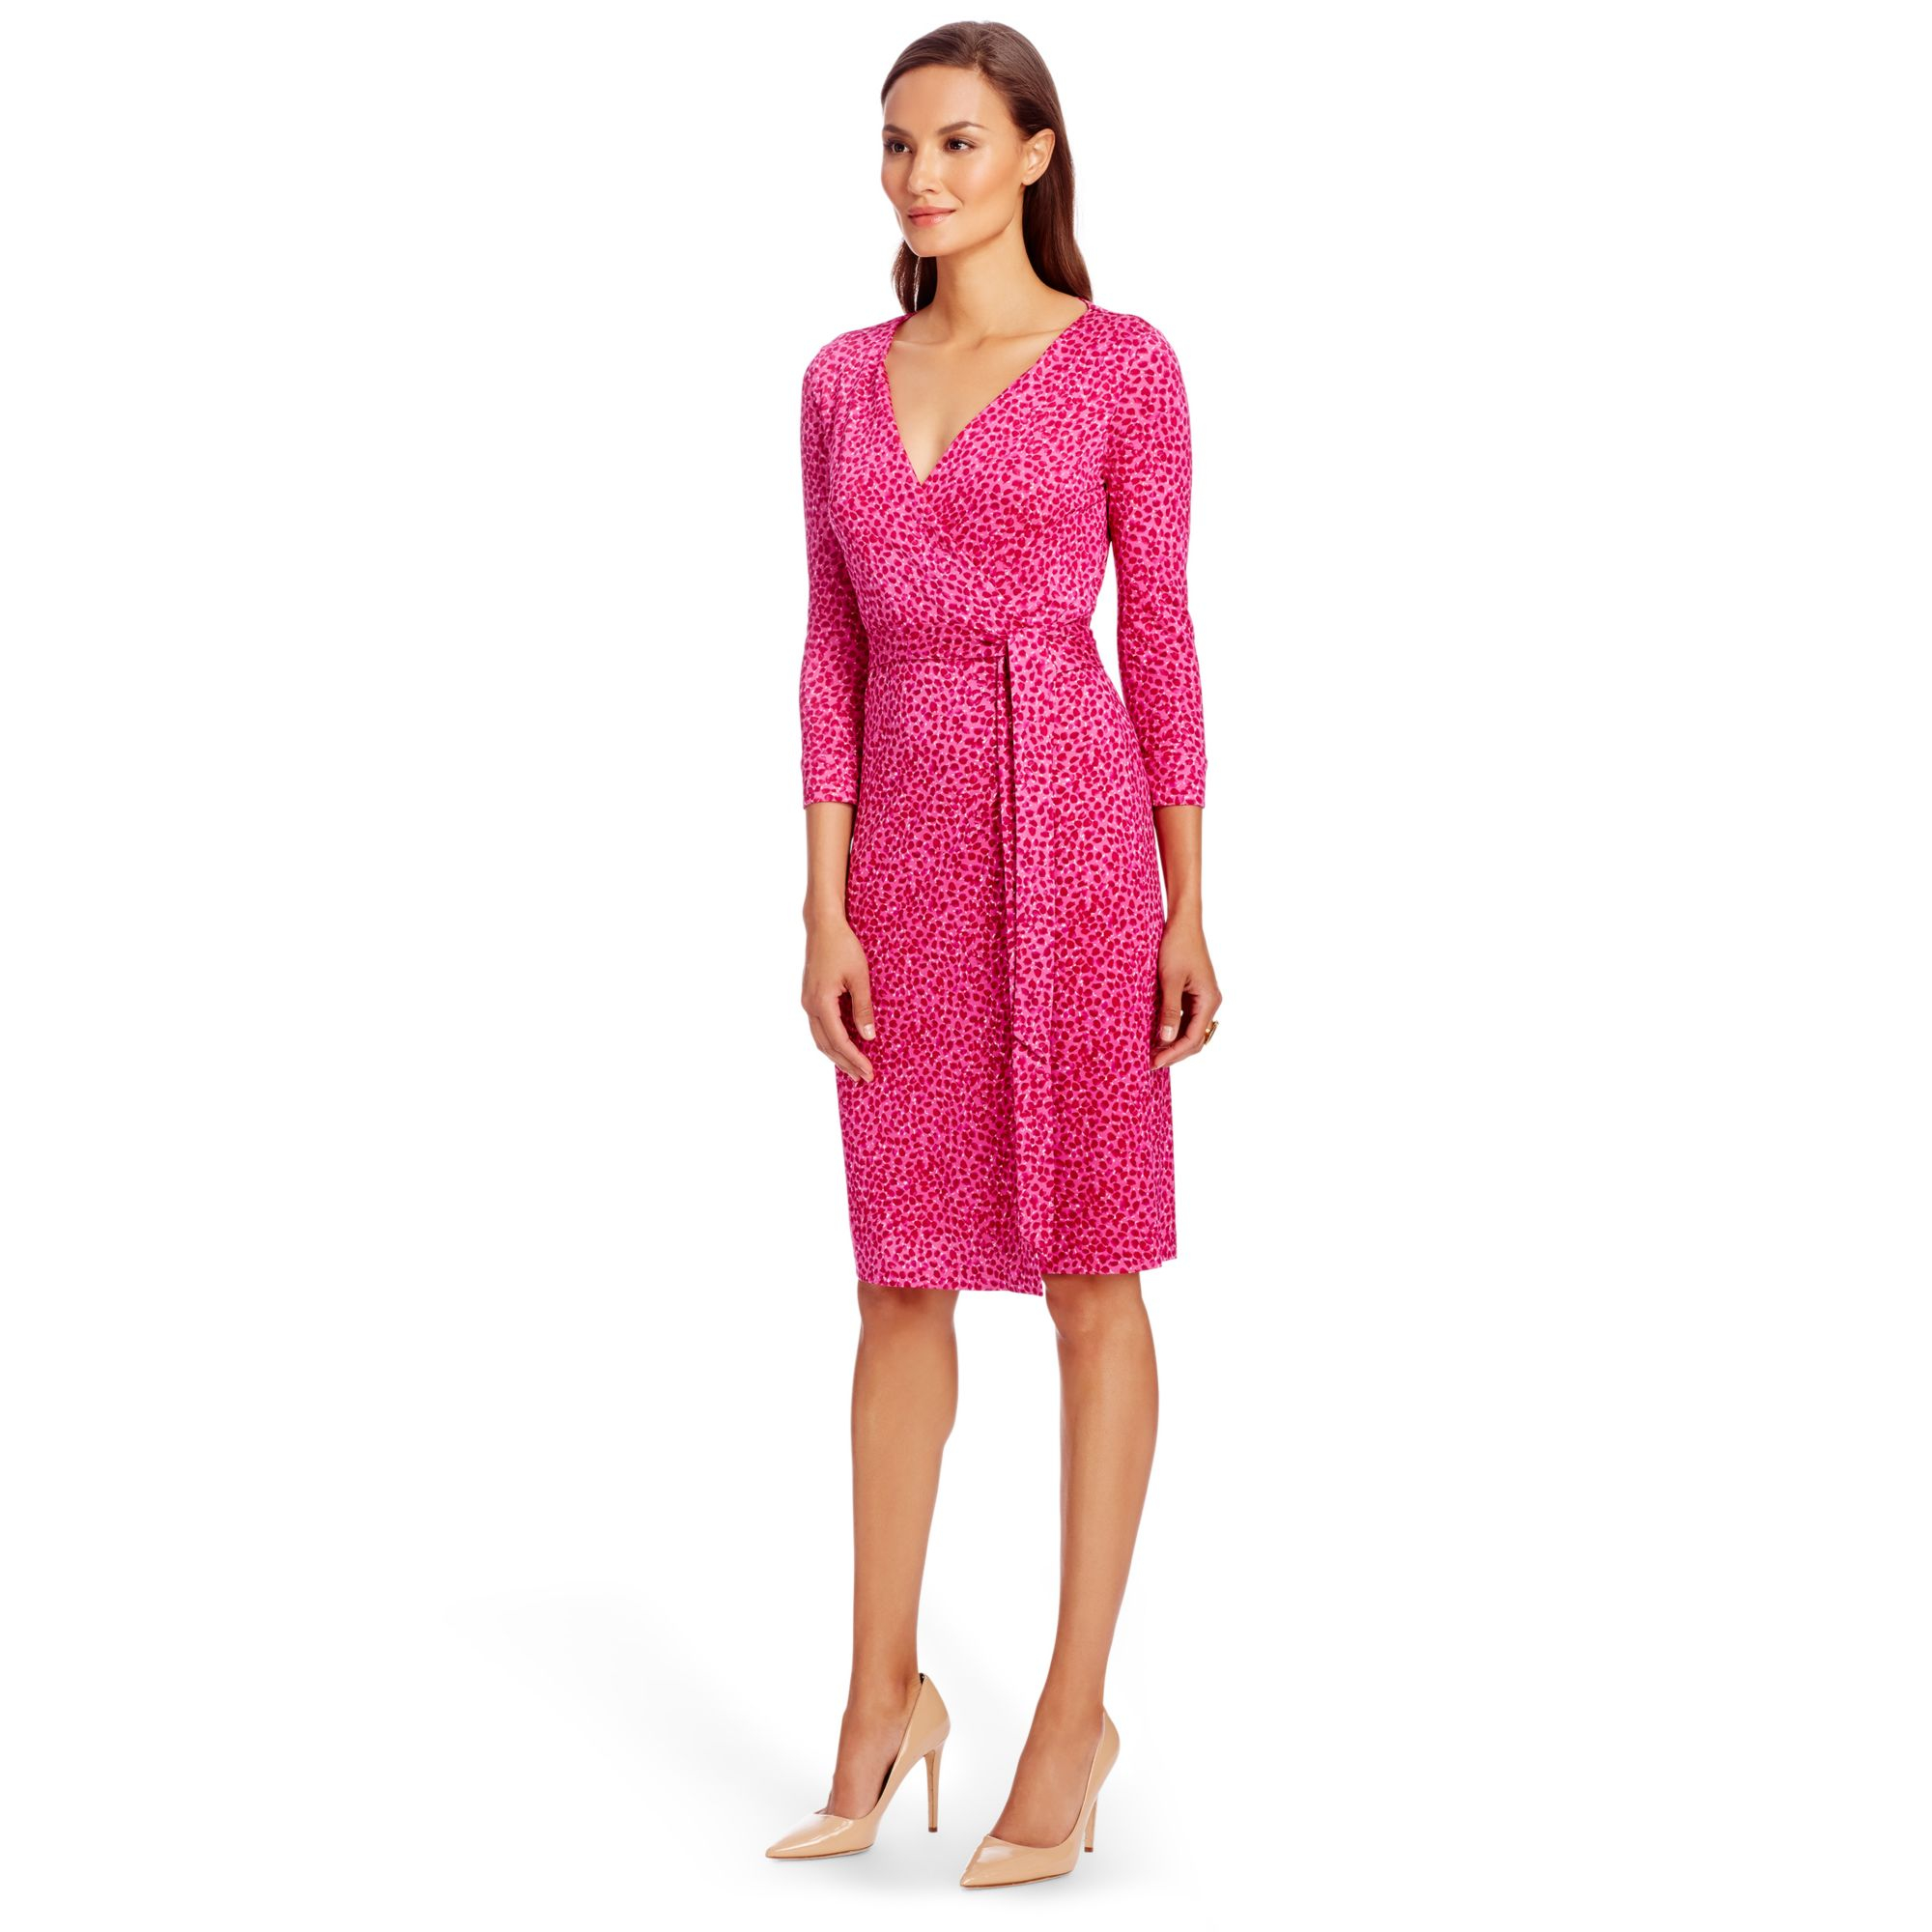 Diane von furstenberg New Julian Two Silk Jersey Wrap Dress in ...